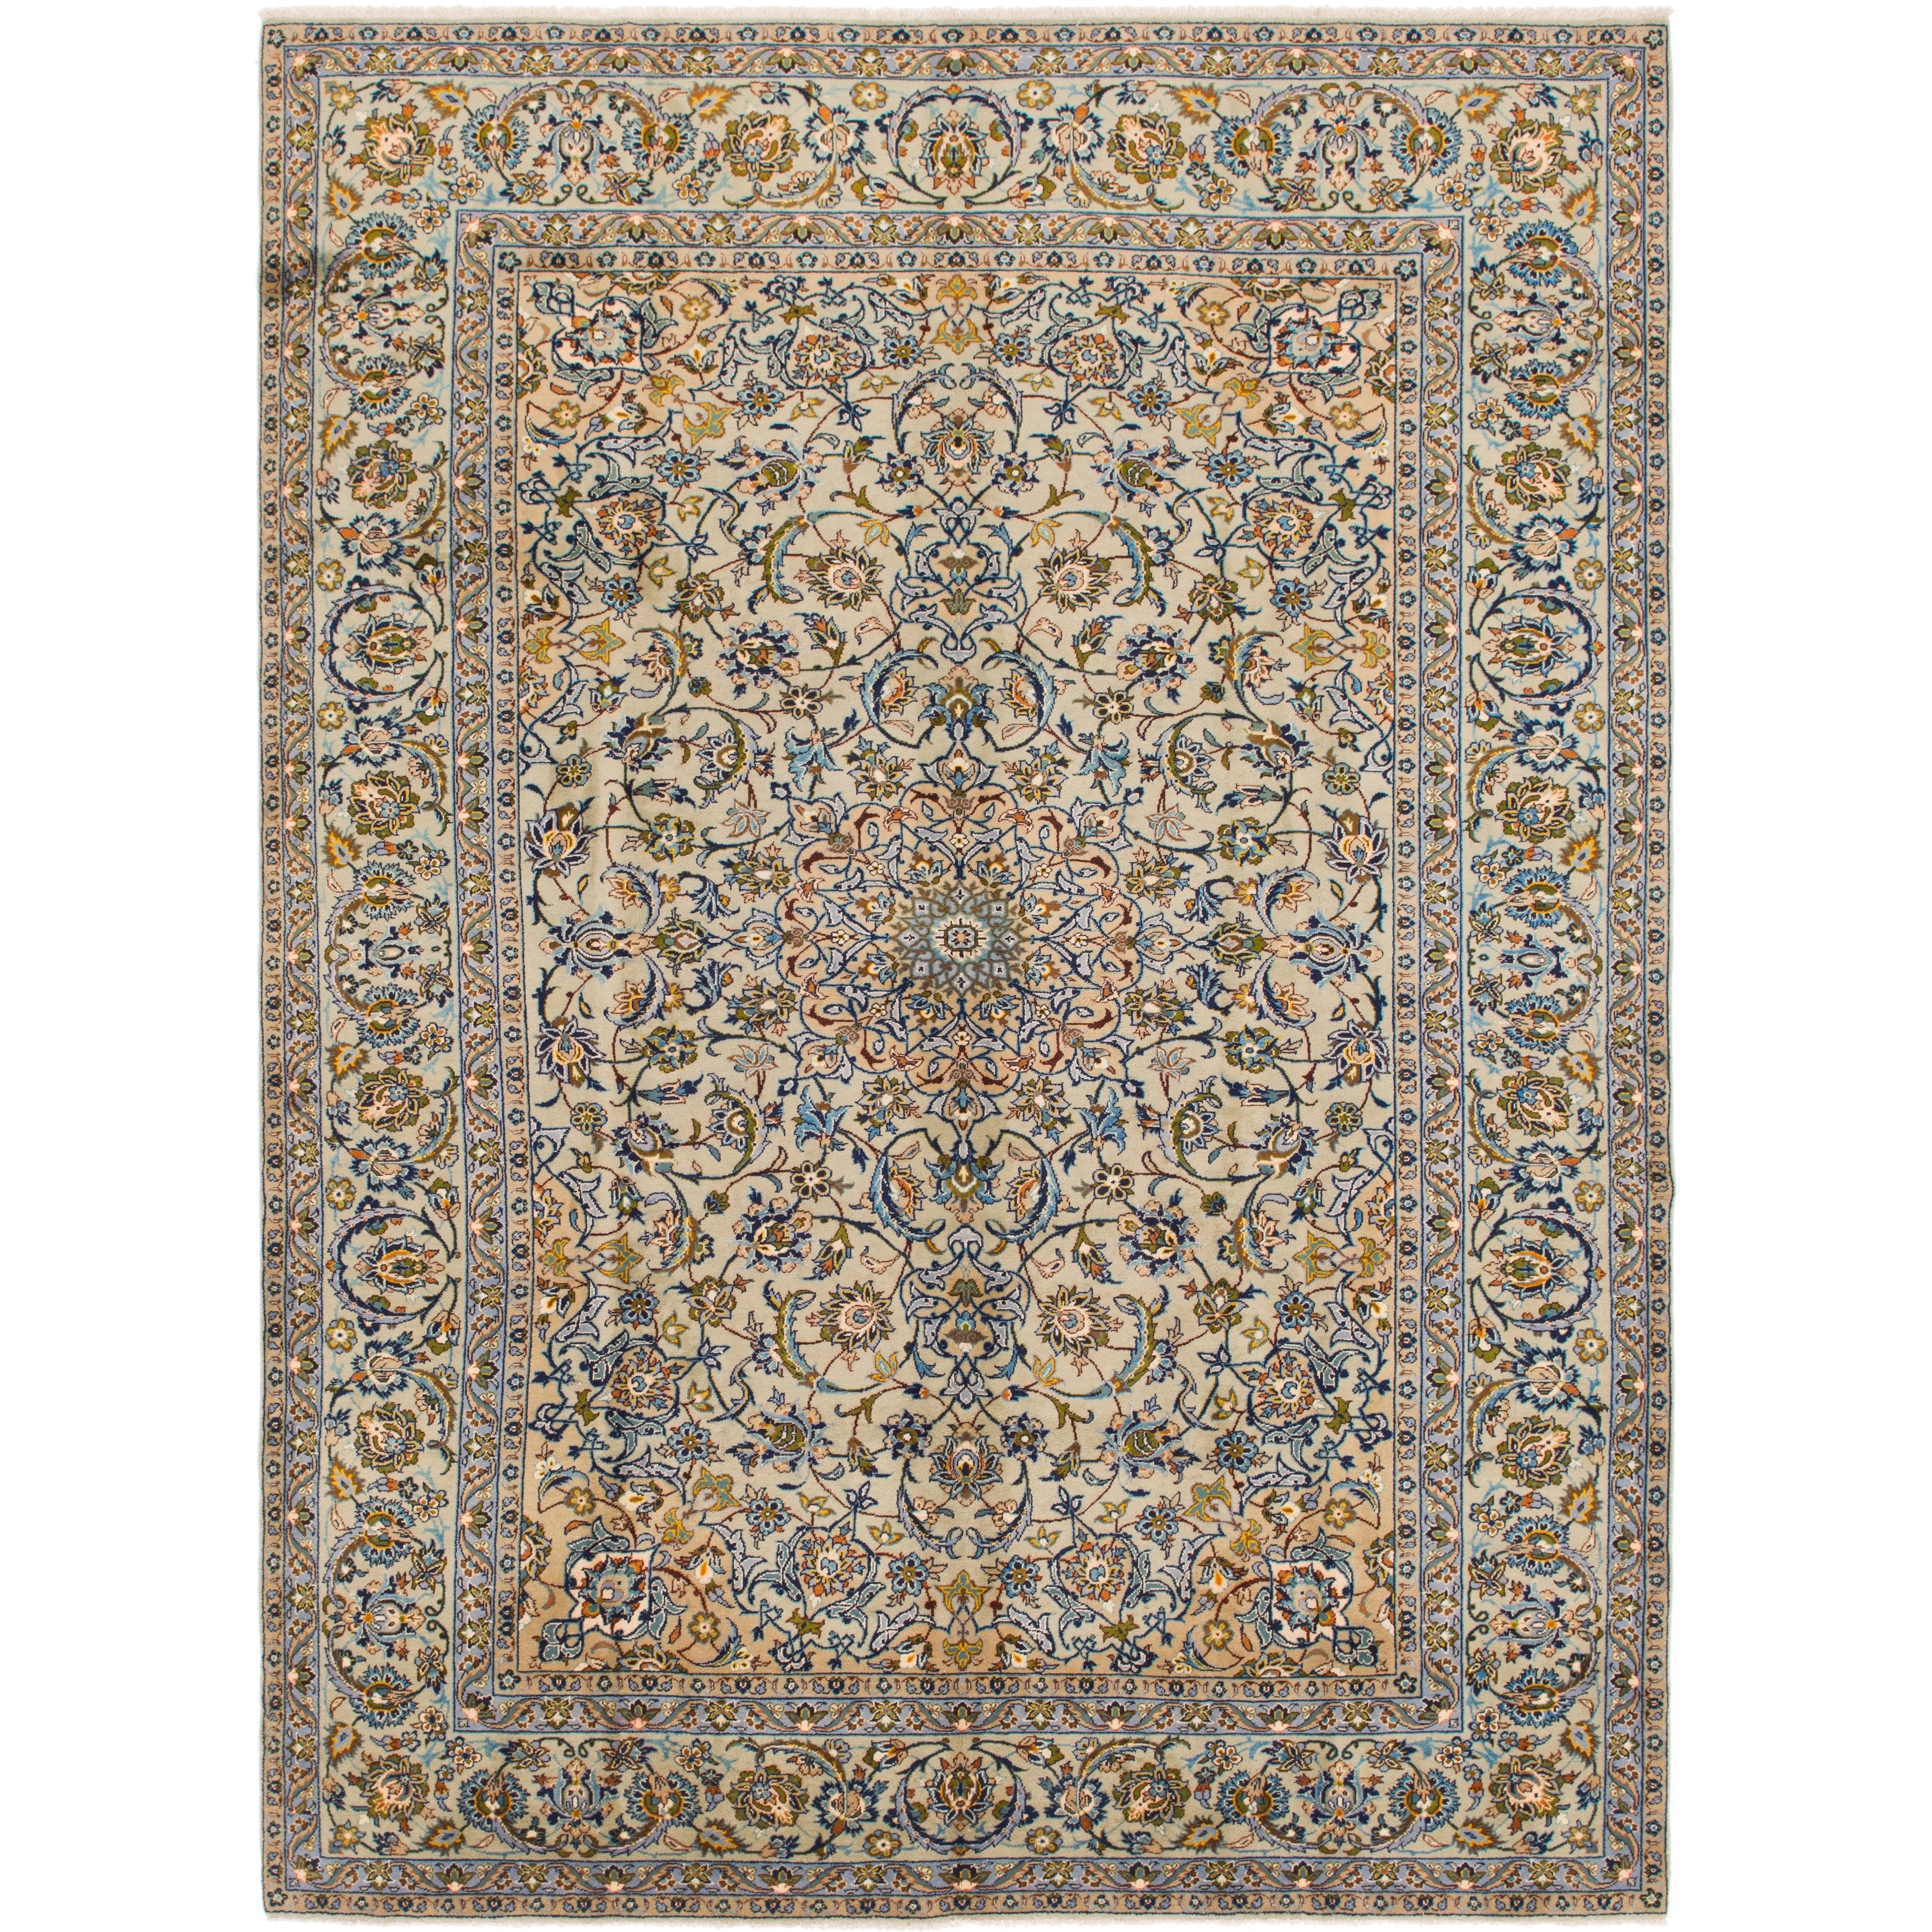 Hand Knotted Kashan Semi Antique Wool Area Rug - 9 7 x 13 (LIGHT GREEN - 9 7 x 13)